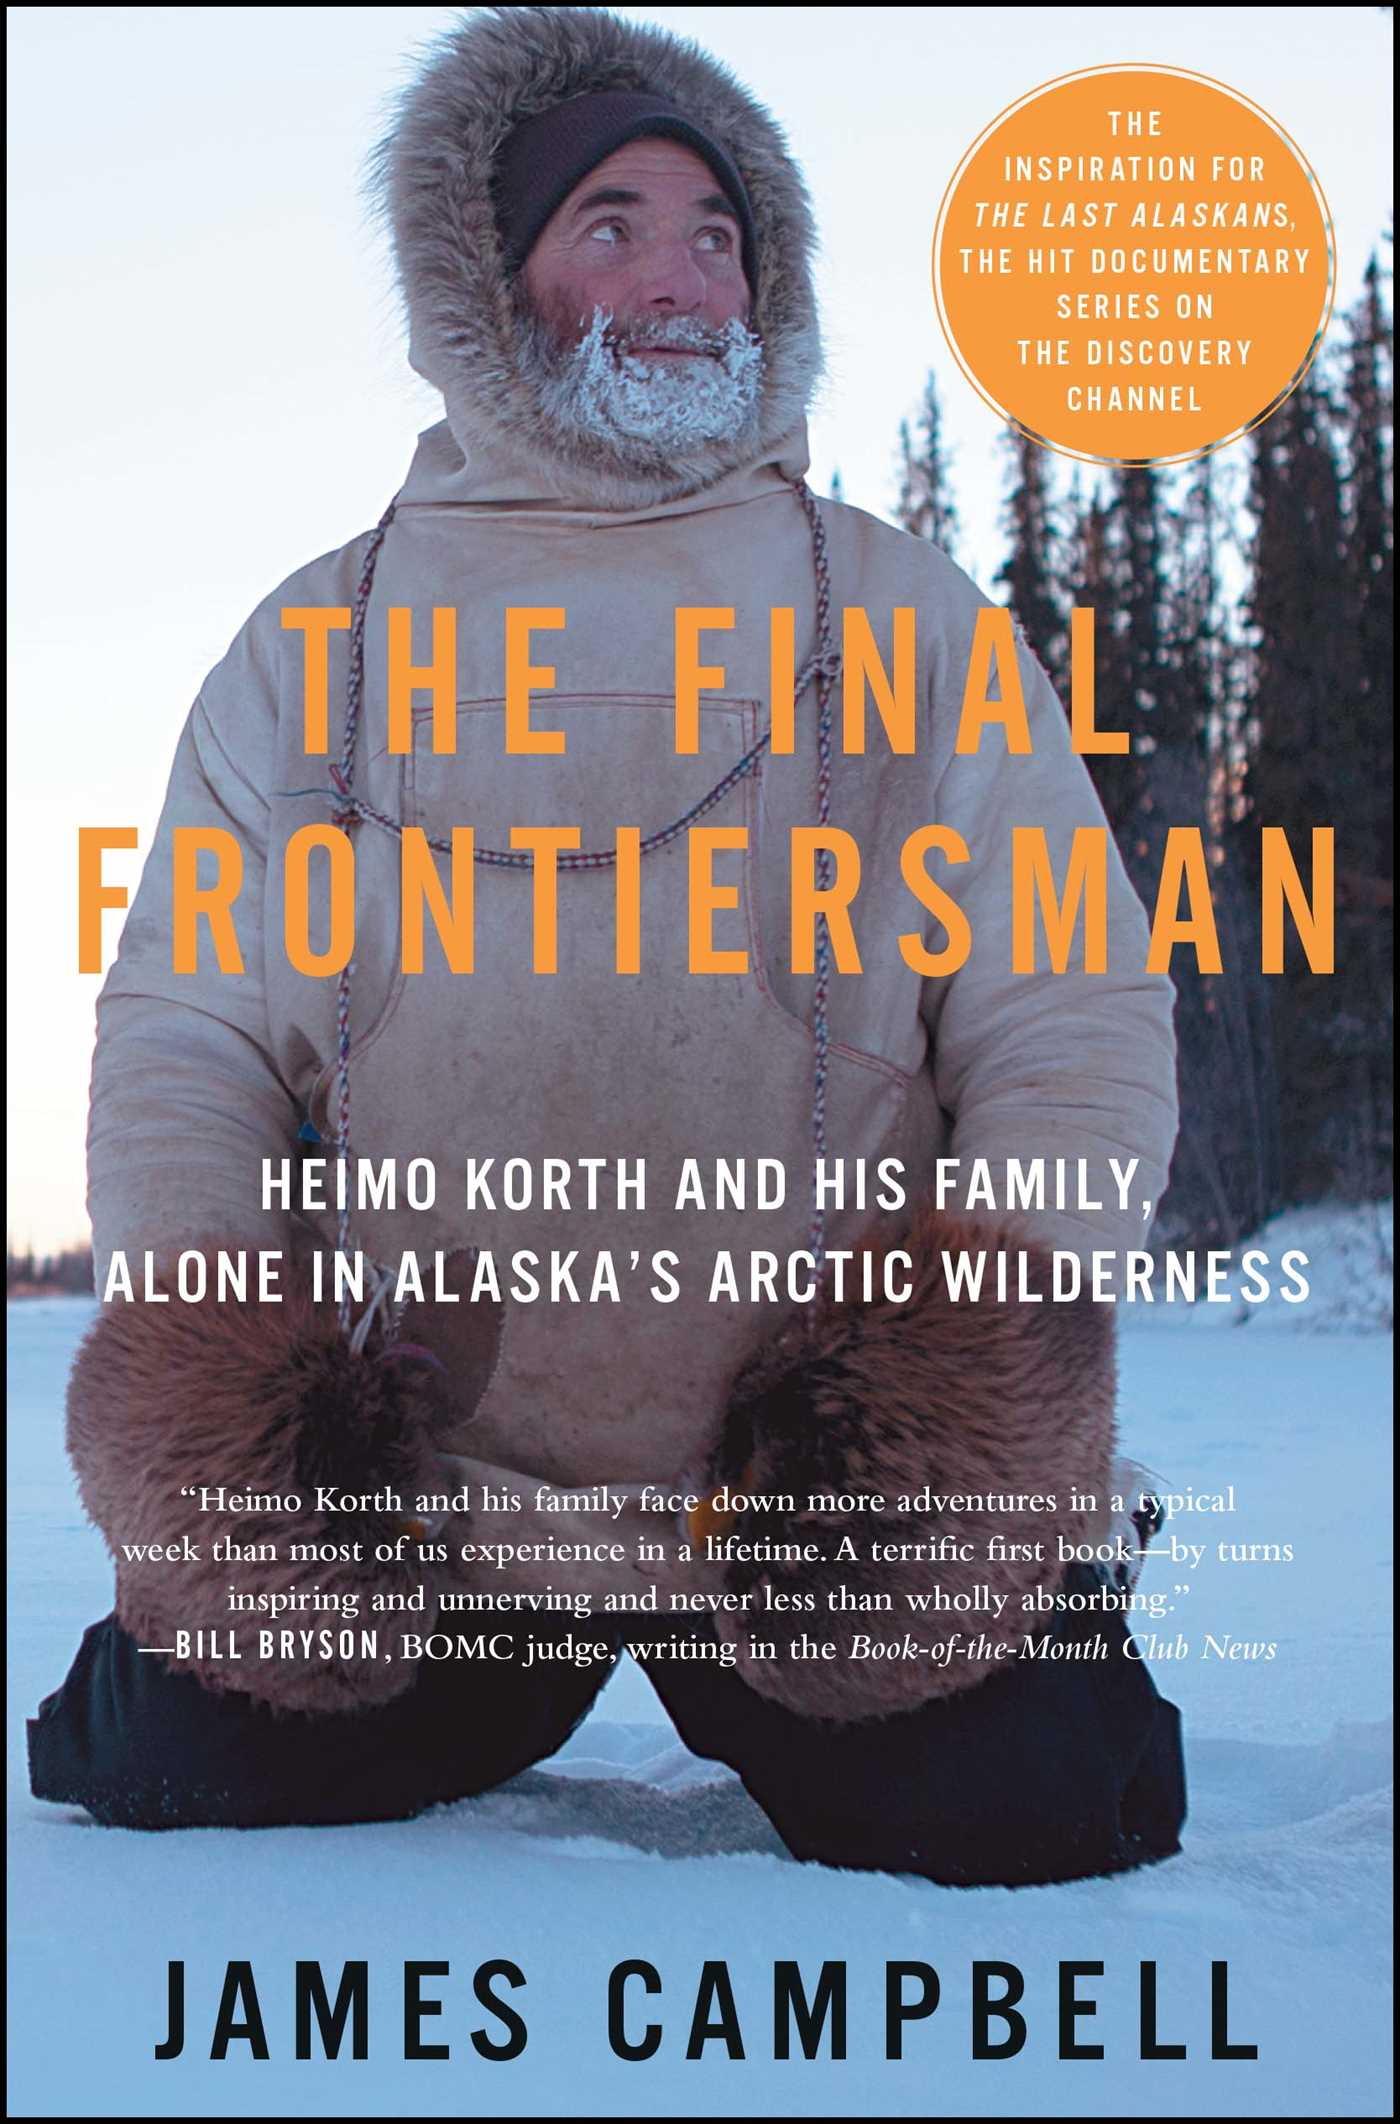 The-final-frontiersman-9781416591214_hr